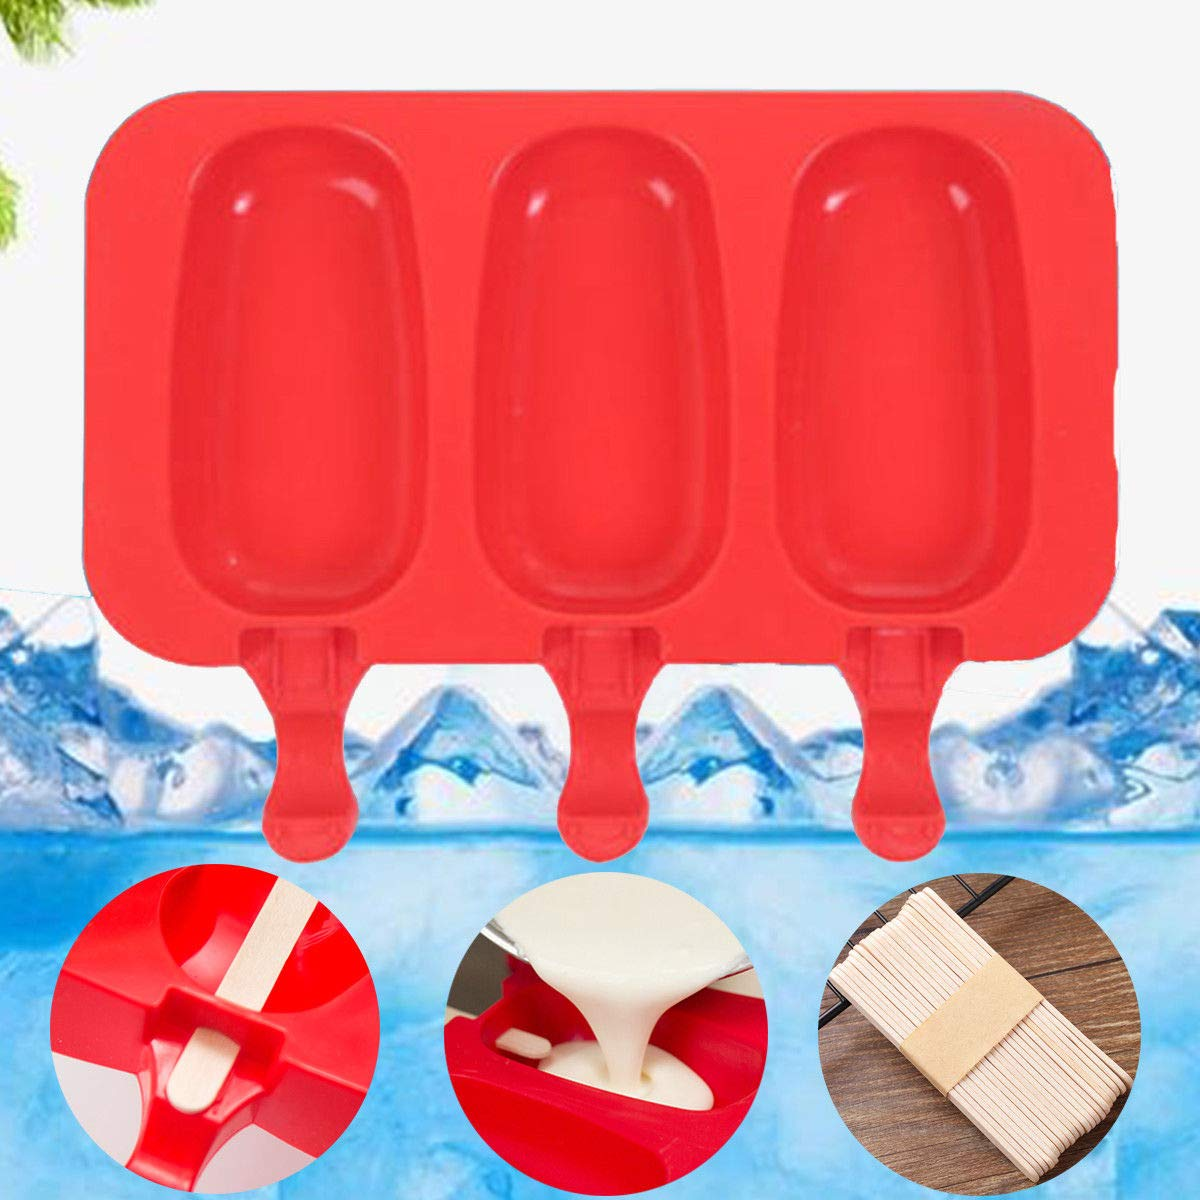 Pop Mold DIY Popsicle Maker Lolly Frozen Tray Ice Cream Mould Jelly+ 20X Sticks